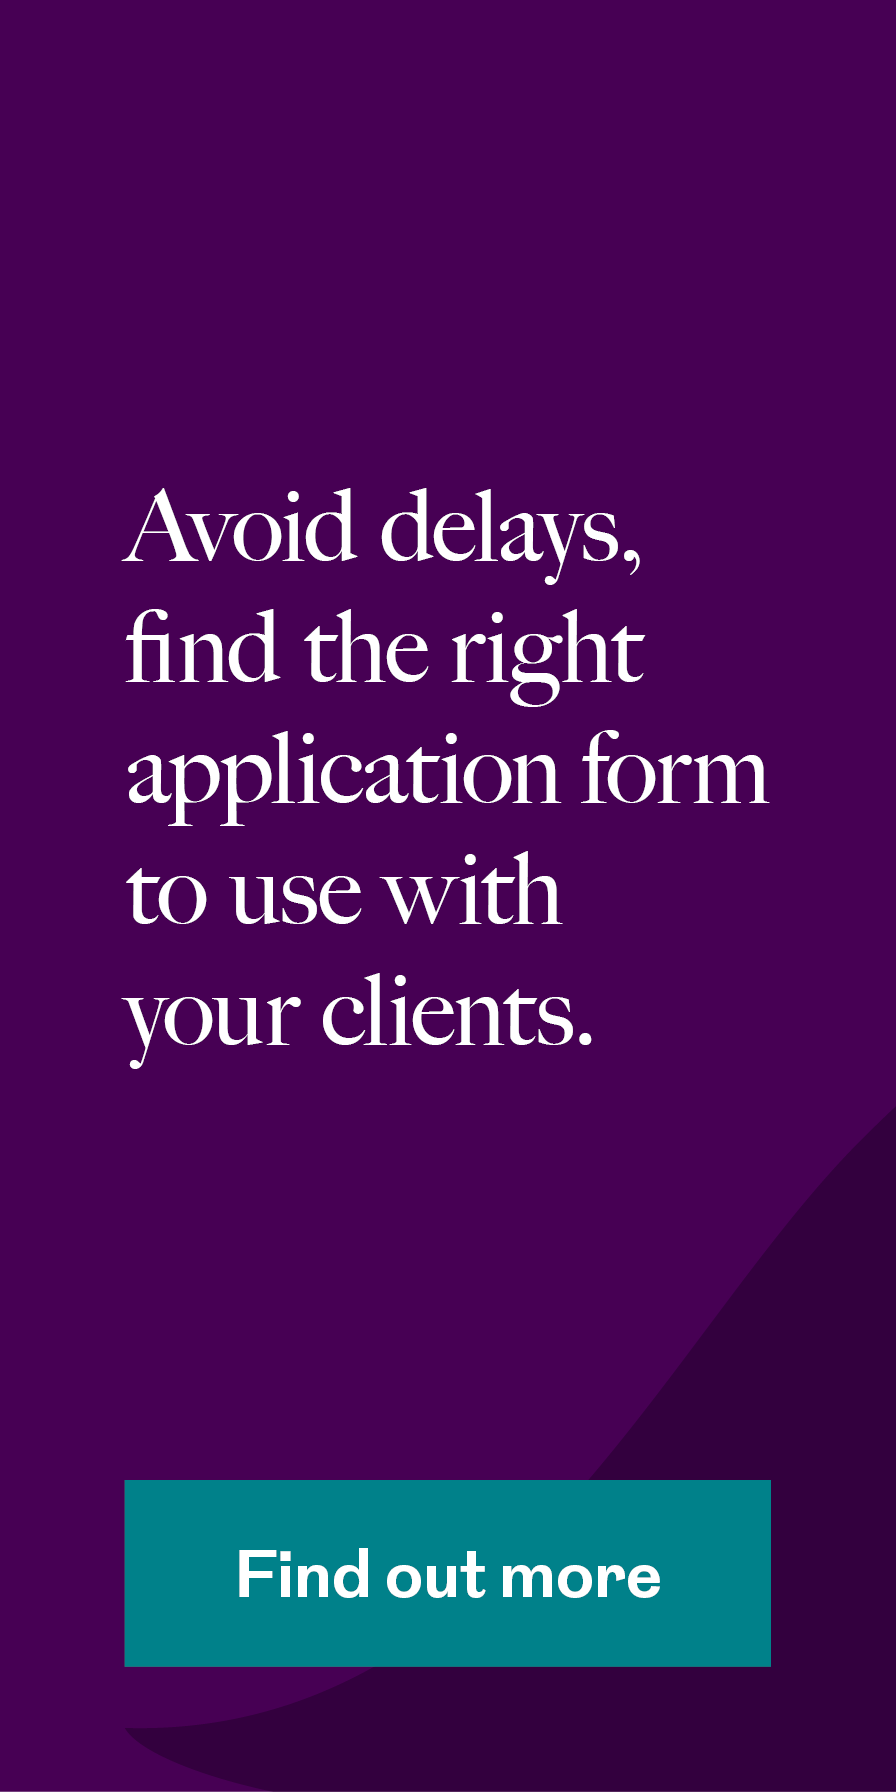 Find the right application form - find out more